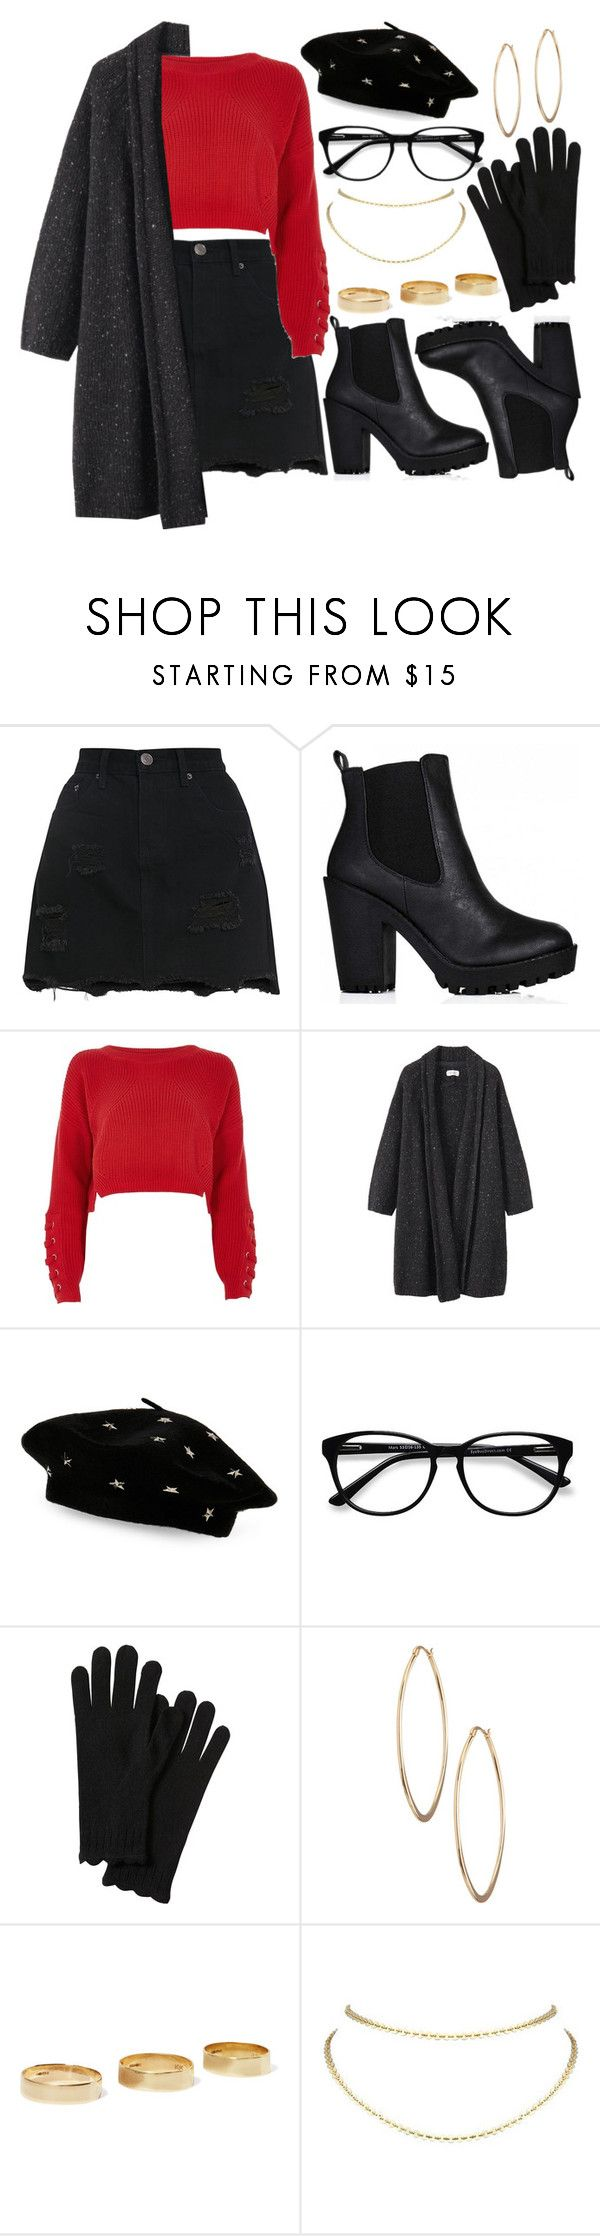 """Untitled #1356"" by asoul4 ❤ liked on Polyvore featuring River Island, Toast, Steve Madden, EyeBuyDirect.com, Lydell NYC, Loren Stewart and Lisa Freede"